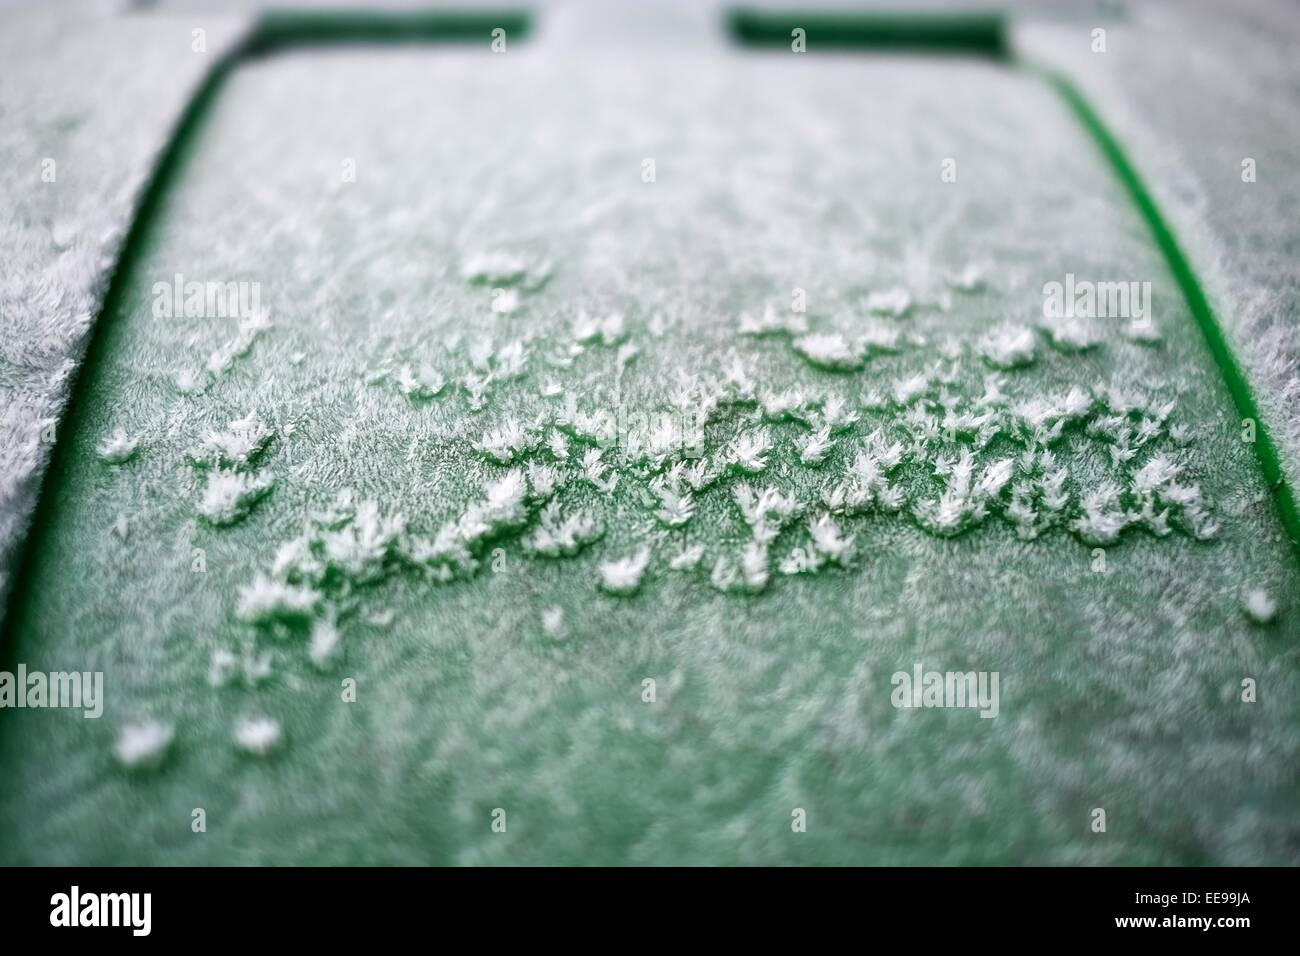 Dustbin Lid Stock Photos & Dustbin Lid Stock Images - Alamy